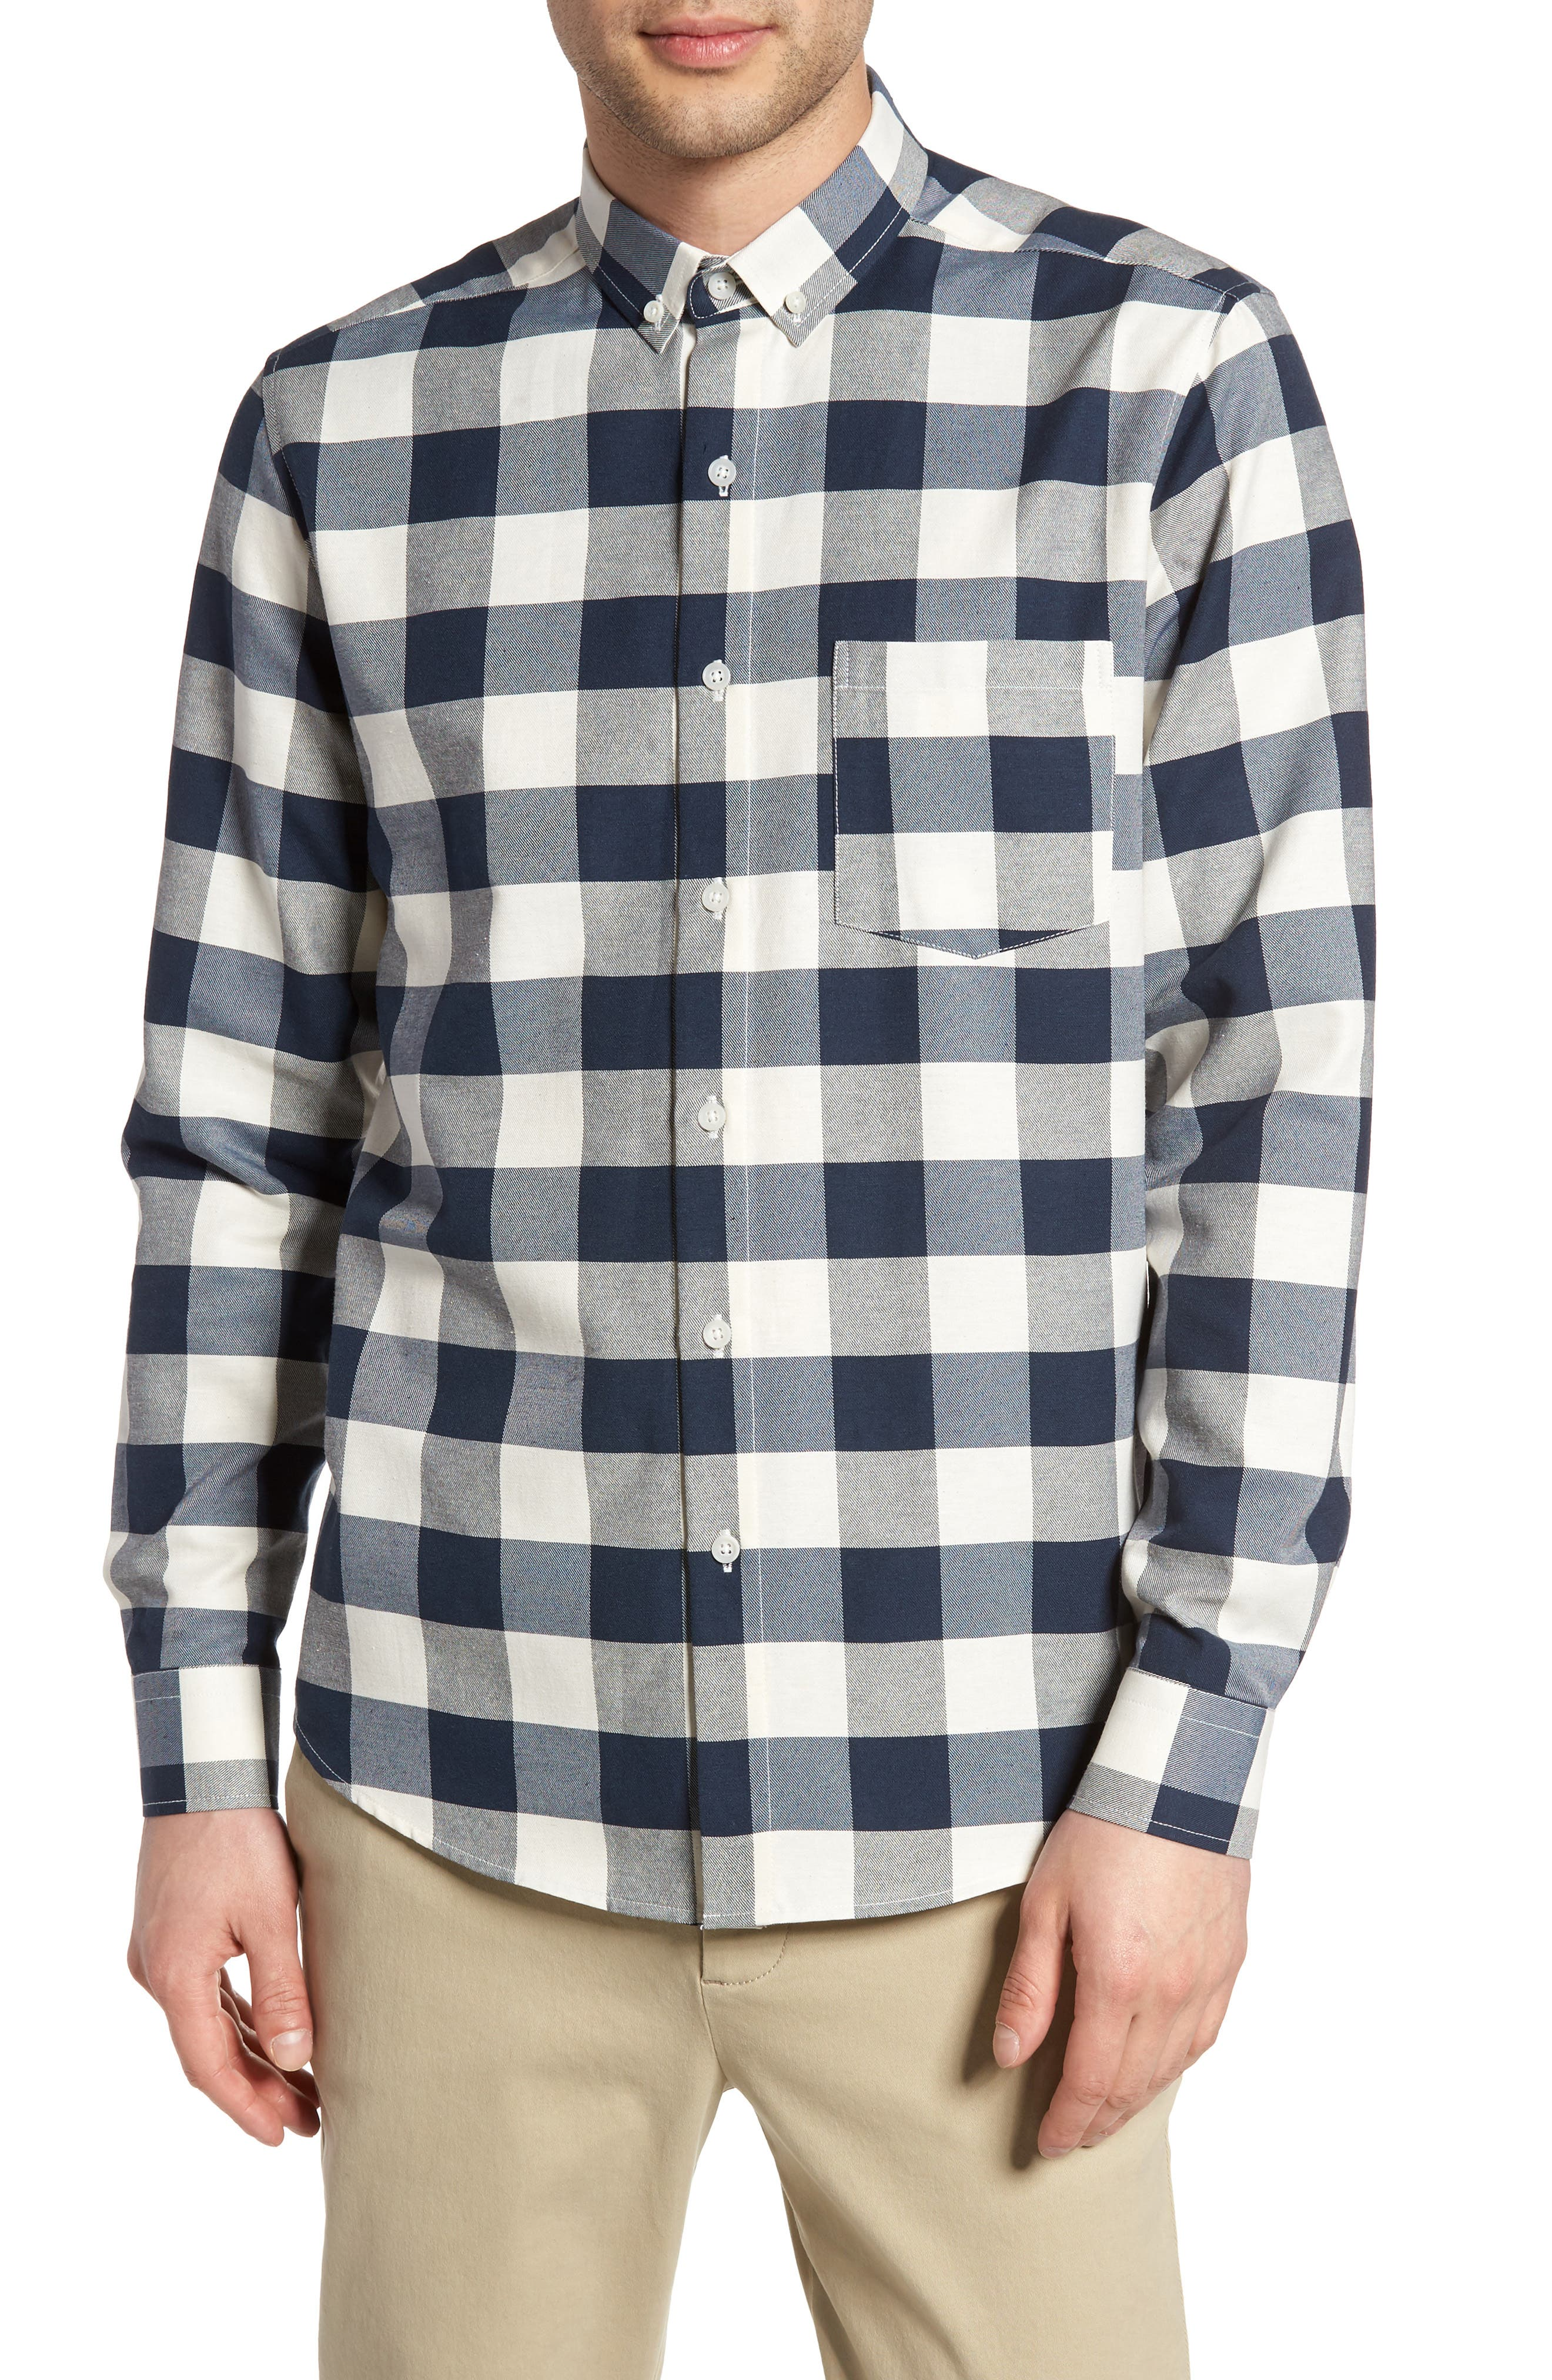 Alternate Image 1 Selected - Topman Check Twill Shirt